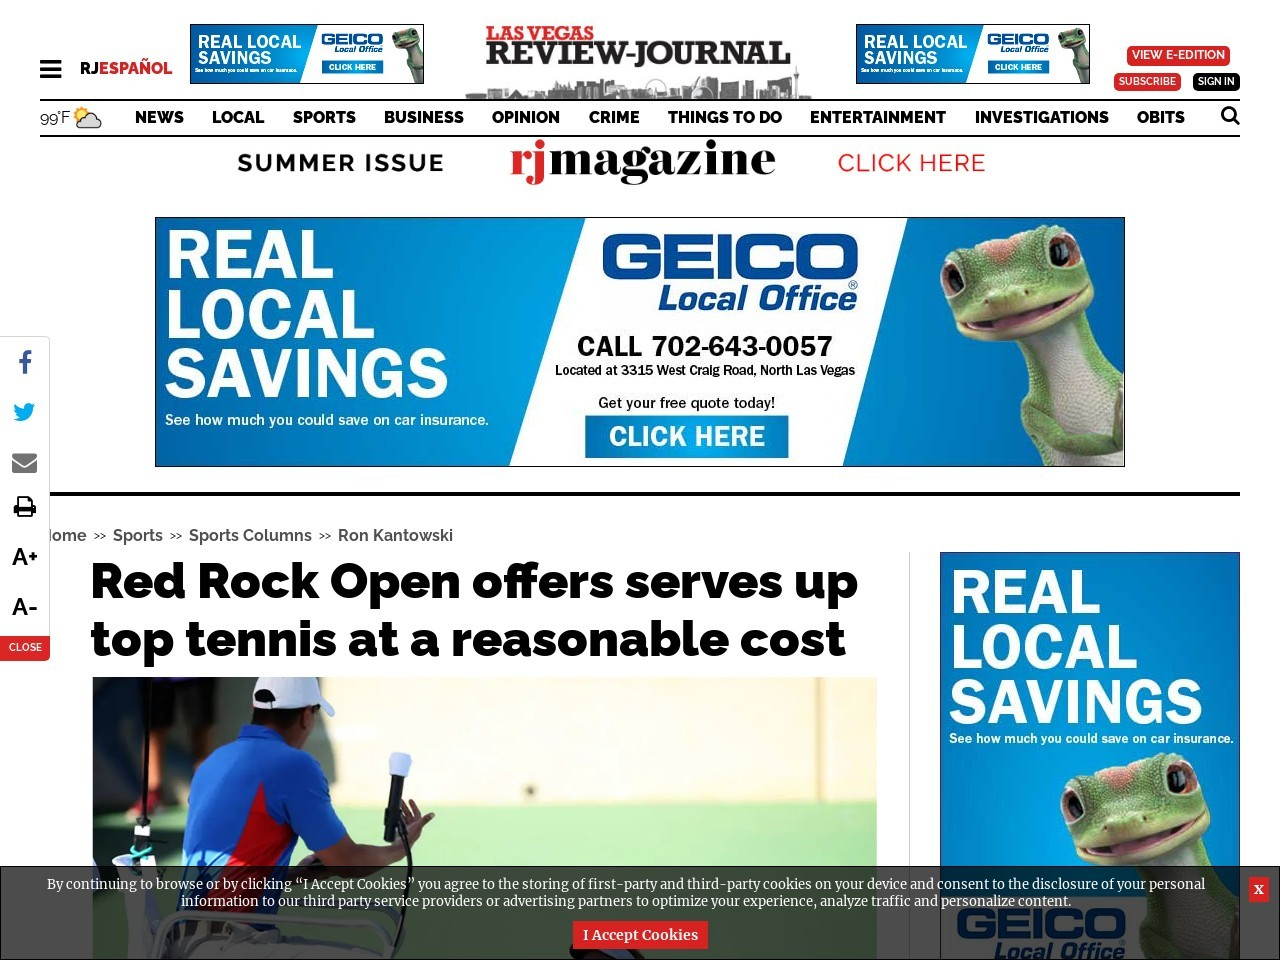 Red Rock Open offers serves up top tennis at a reasonable cost